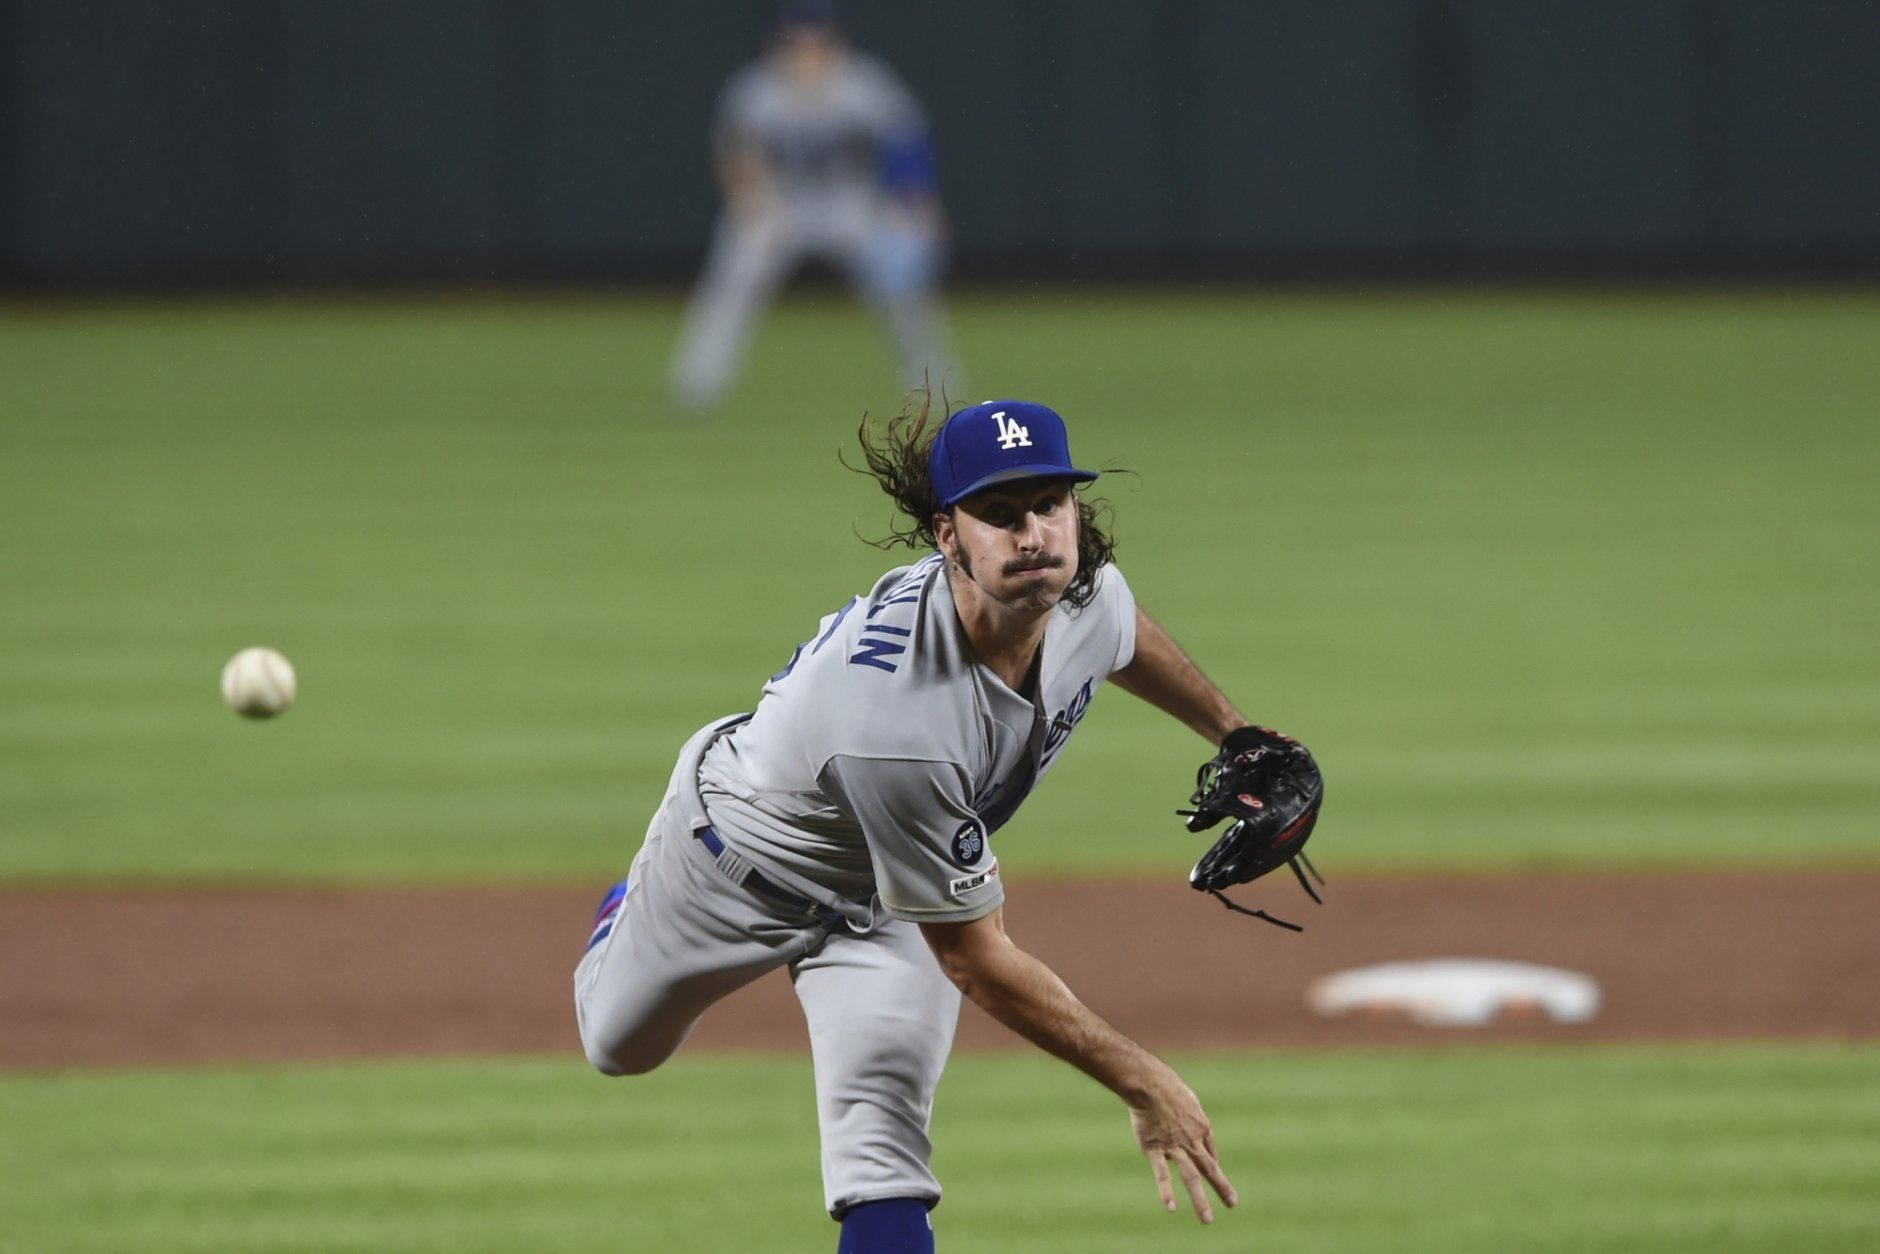 official photos 64d6f 4d13d Hill struggles in return as Dodgers rally past Orioles 4-2 ...